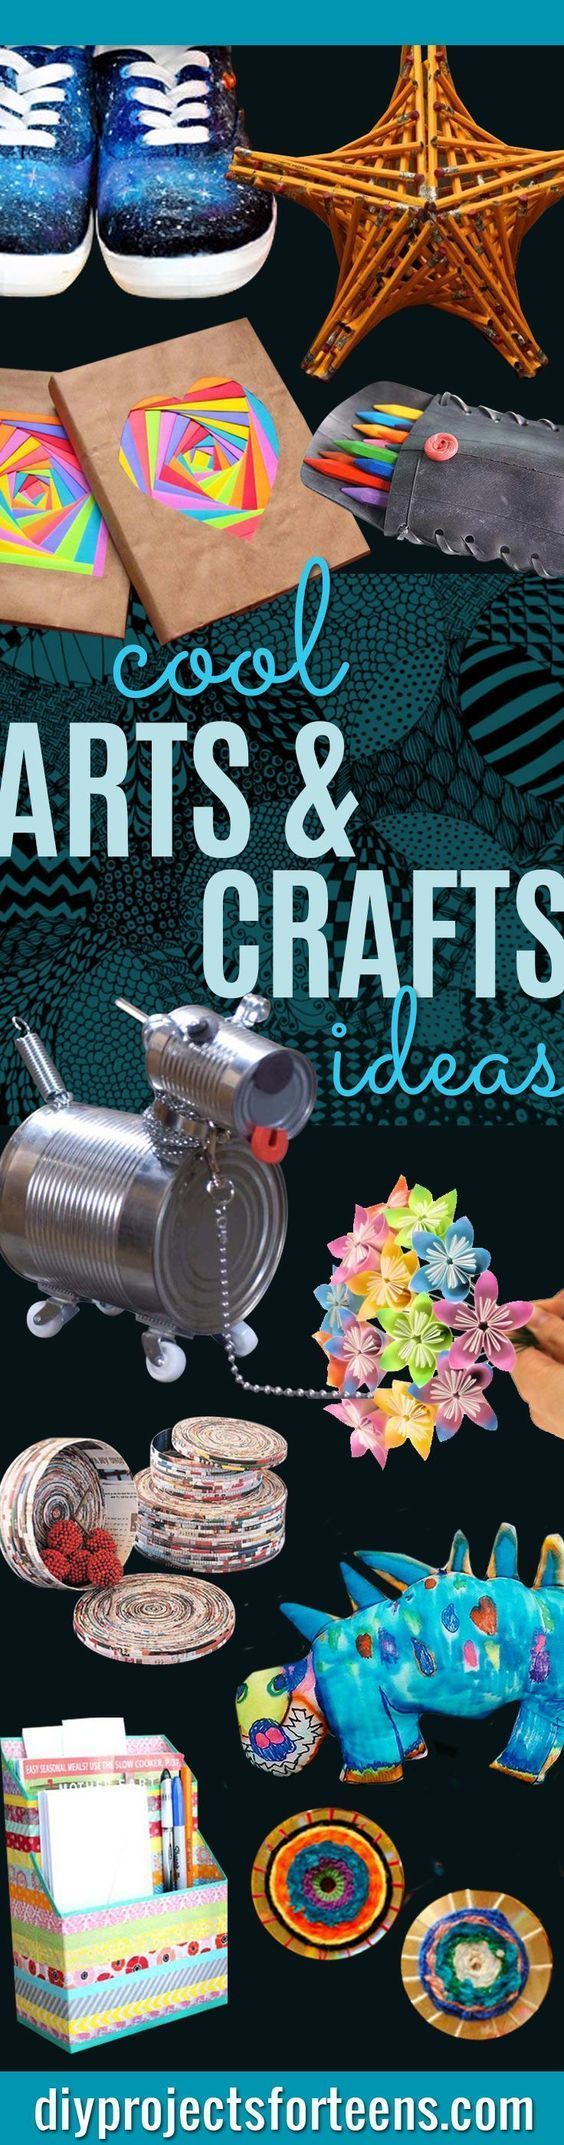 Cool Arts and Crafts Ideas for Teens, Kids and Adults. Fun and Creative DIY Projects for School, Home, Wall Art. Awesome Room Decor Ideas for Teenagers and Tweens http://diyprojectsforteens.com/arts-and-crafts-ideas-for-teens/ #artsandcrafts #DIYHomeDecorForTeens